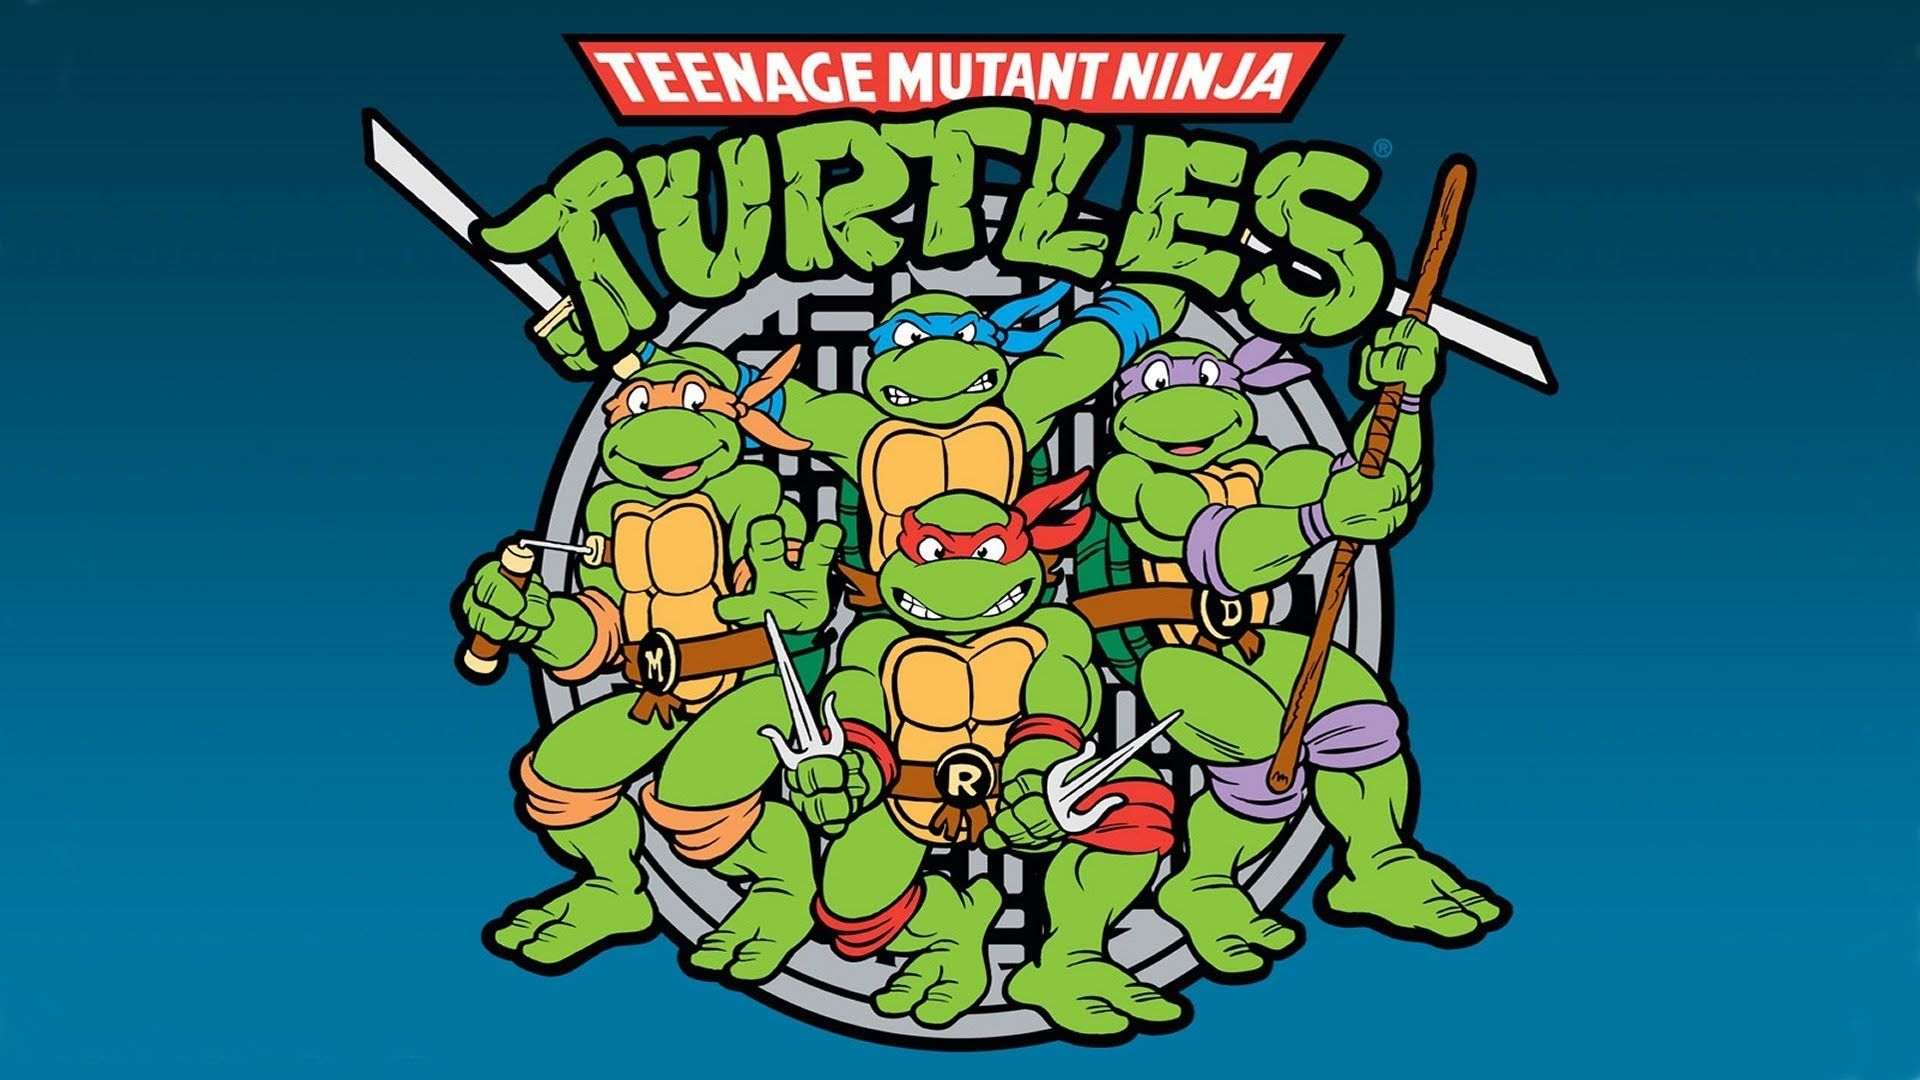 1980s Teenage Mutant Ninja Turtles Wallpapers Top Free